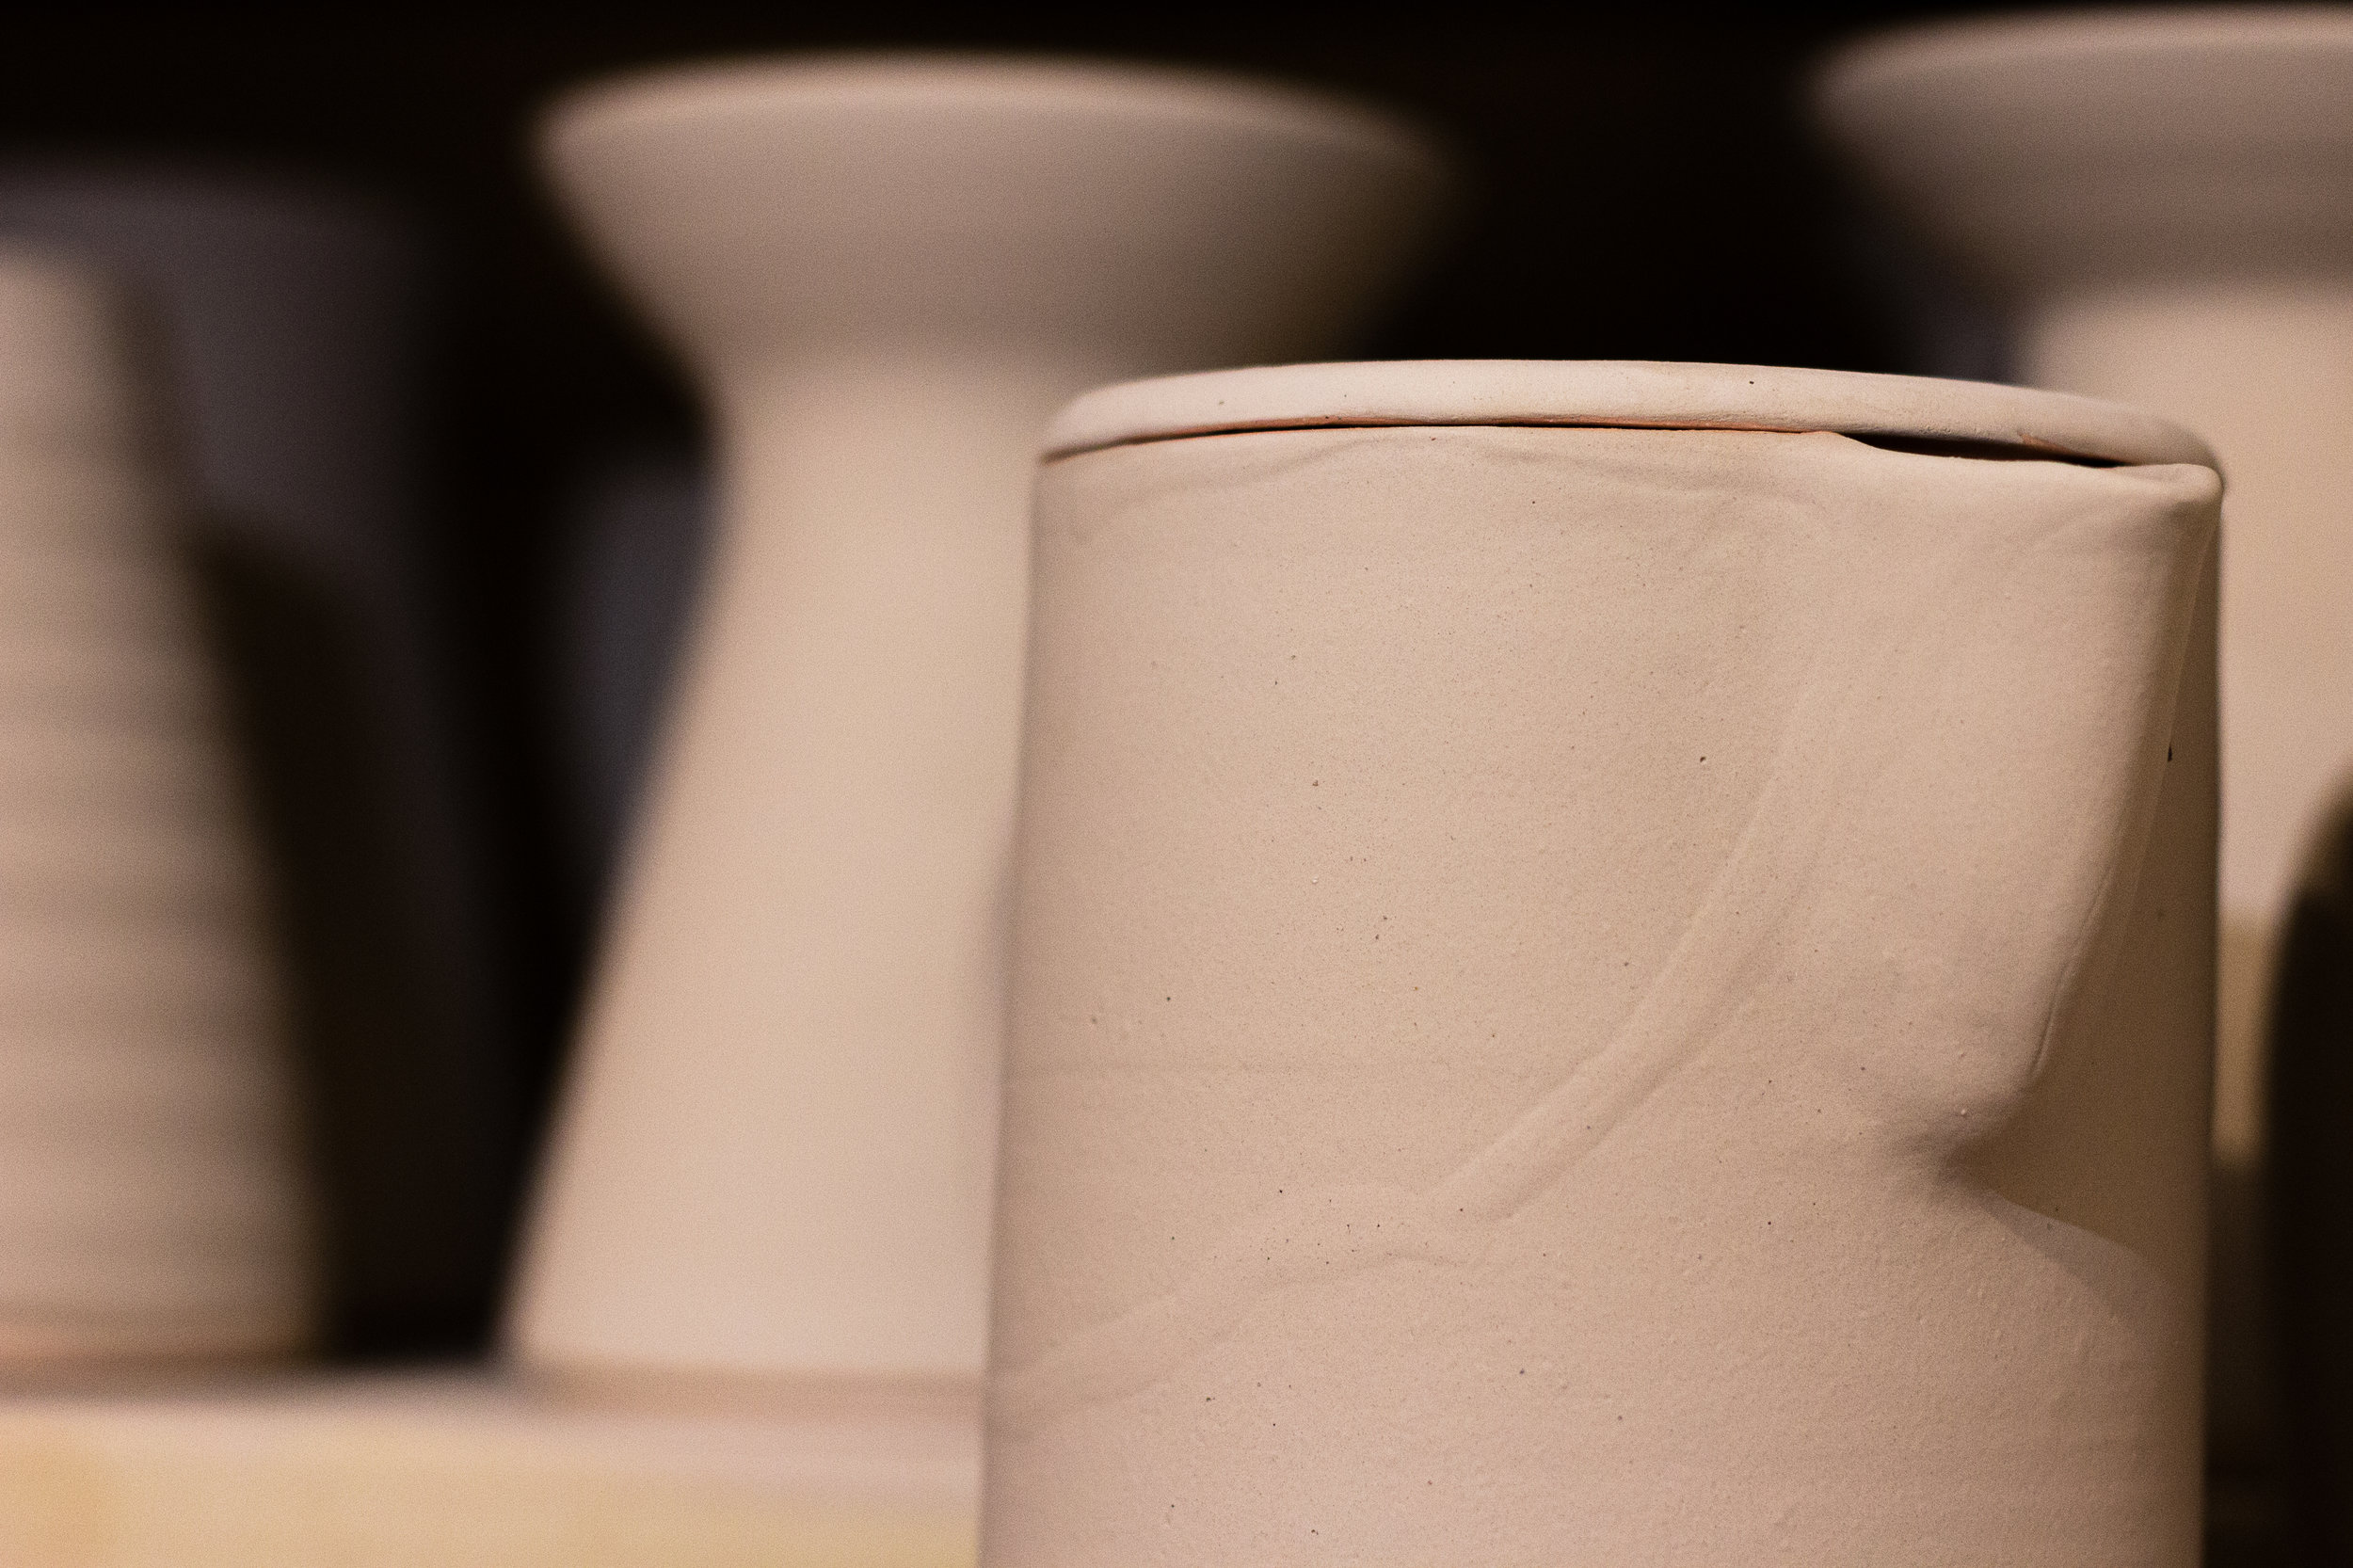 Glazed pots in the kiln before firing. Photograph by Jack Li.